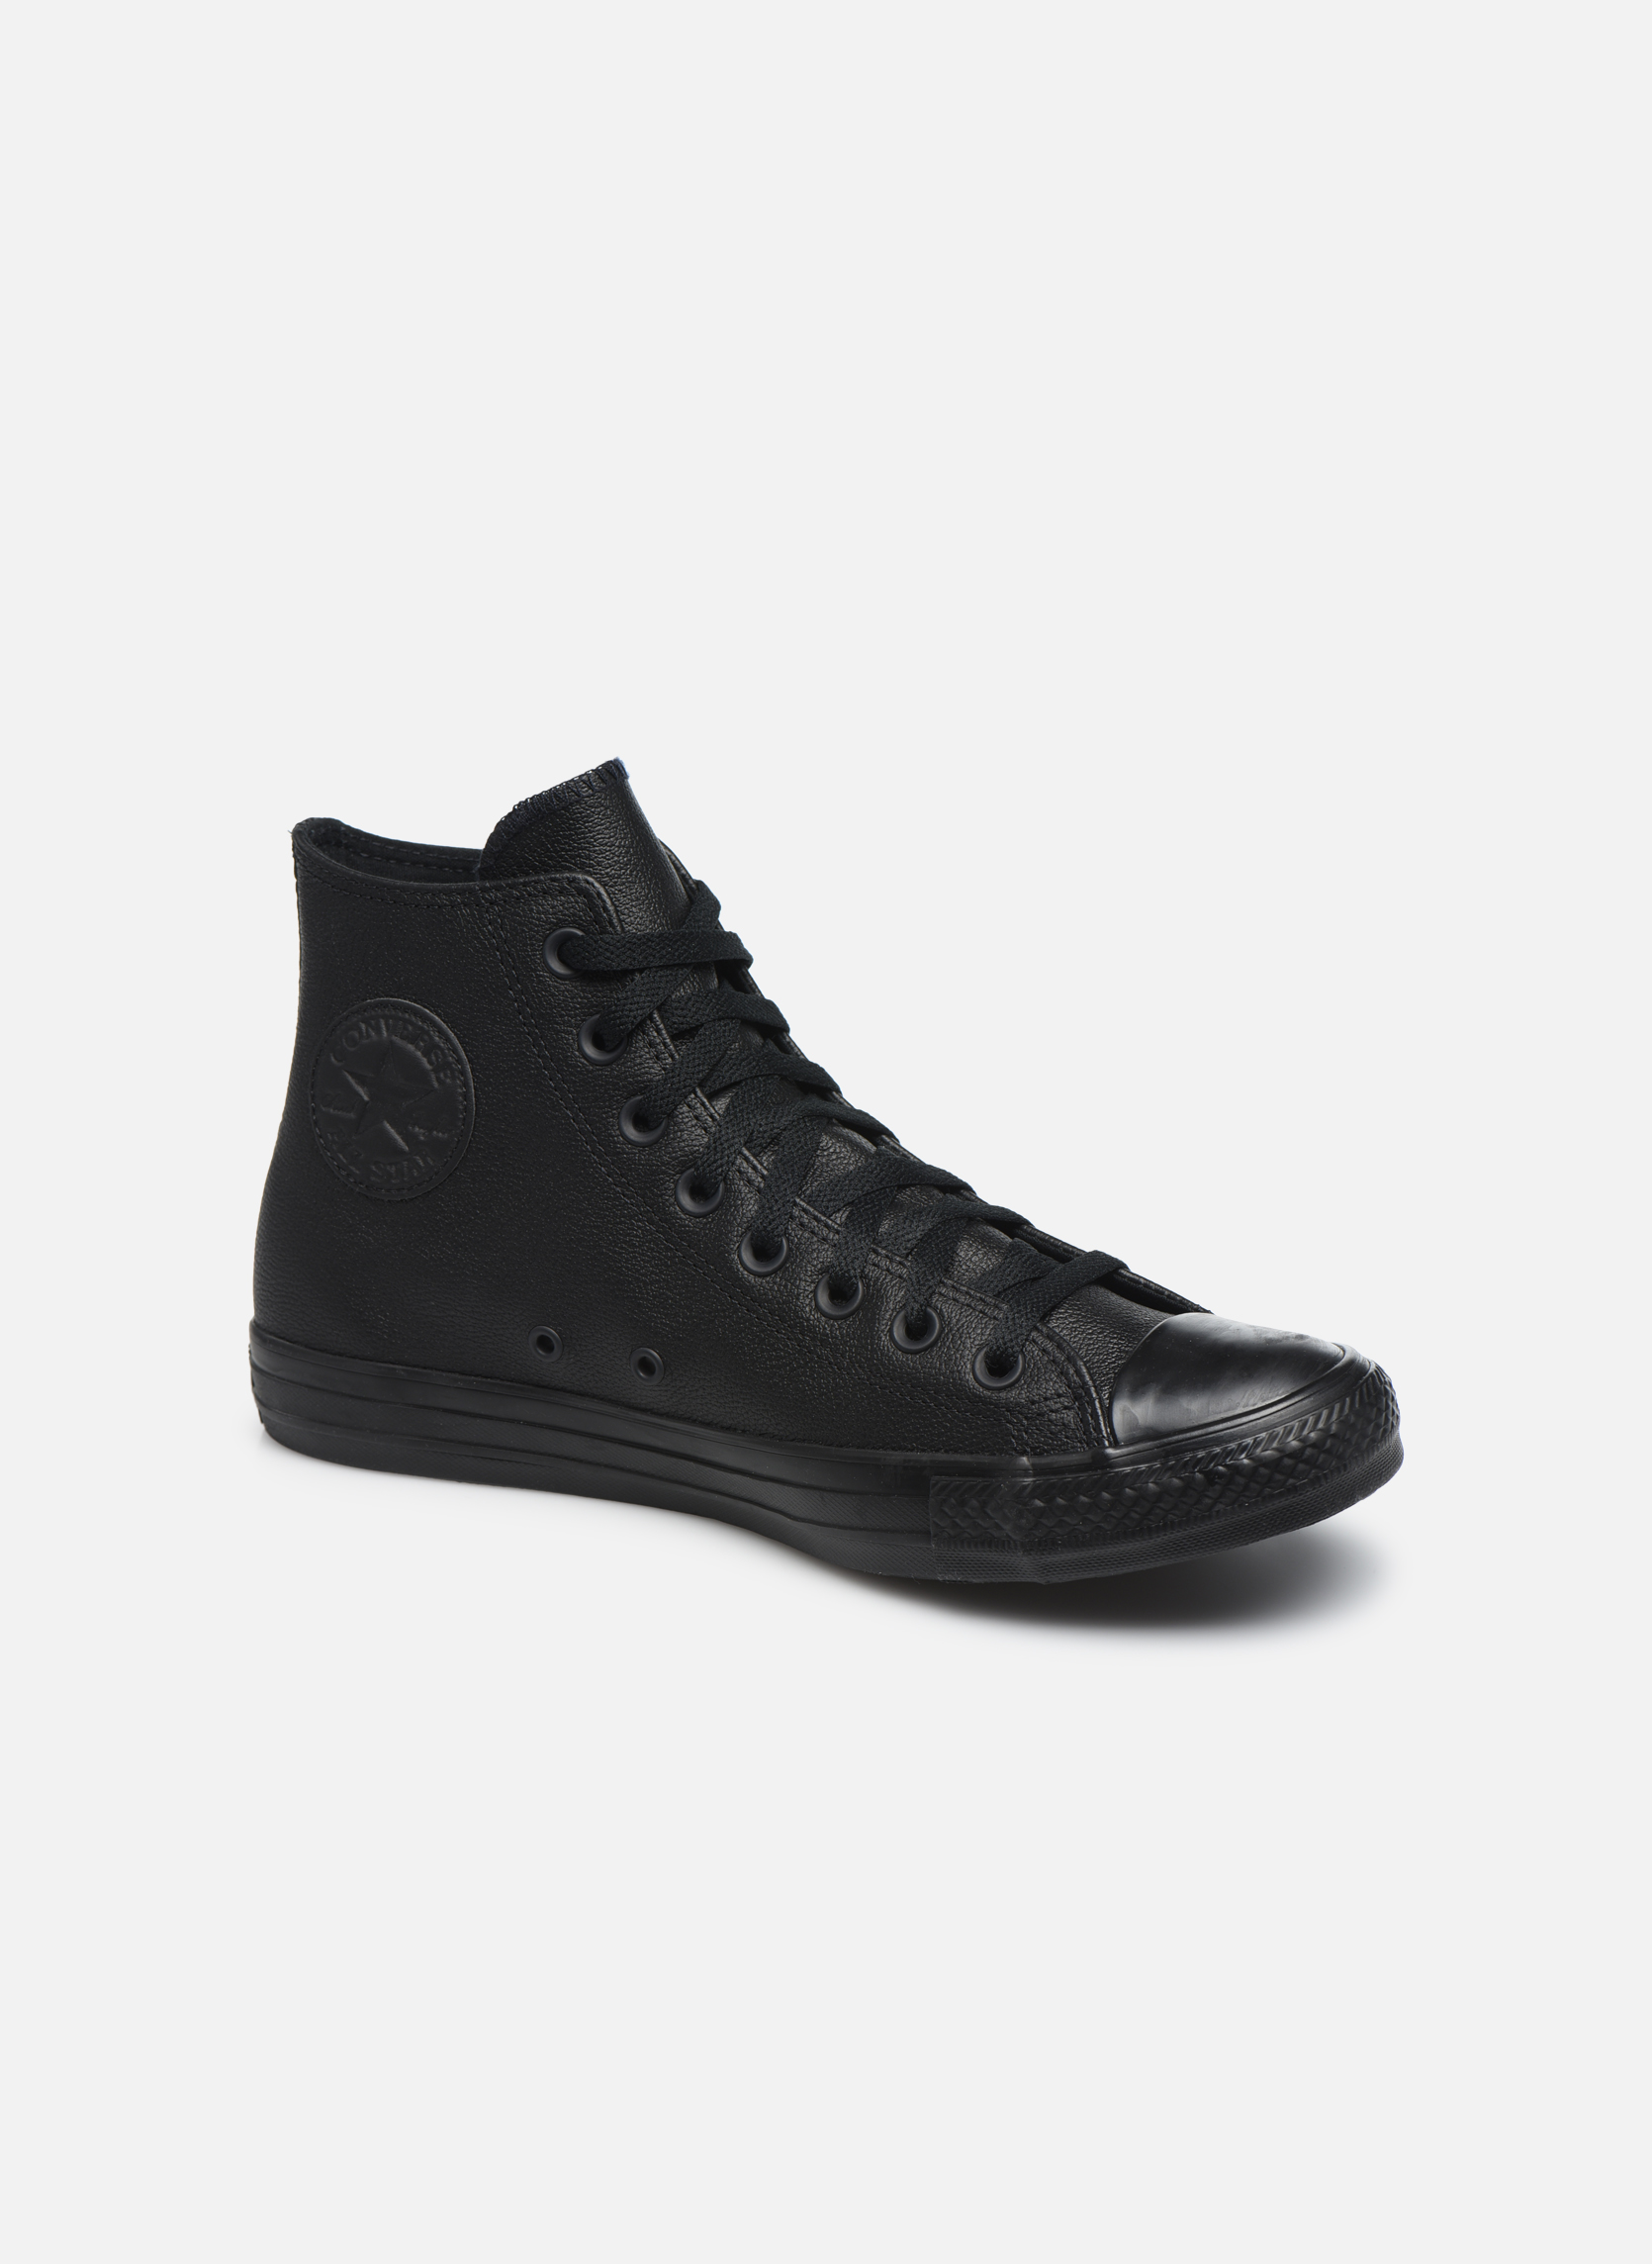 Sneaker Herren Chuck Taylor All Star Mono Leather Hi M